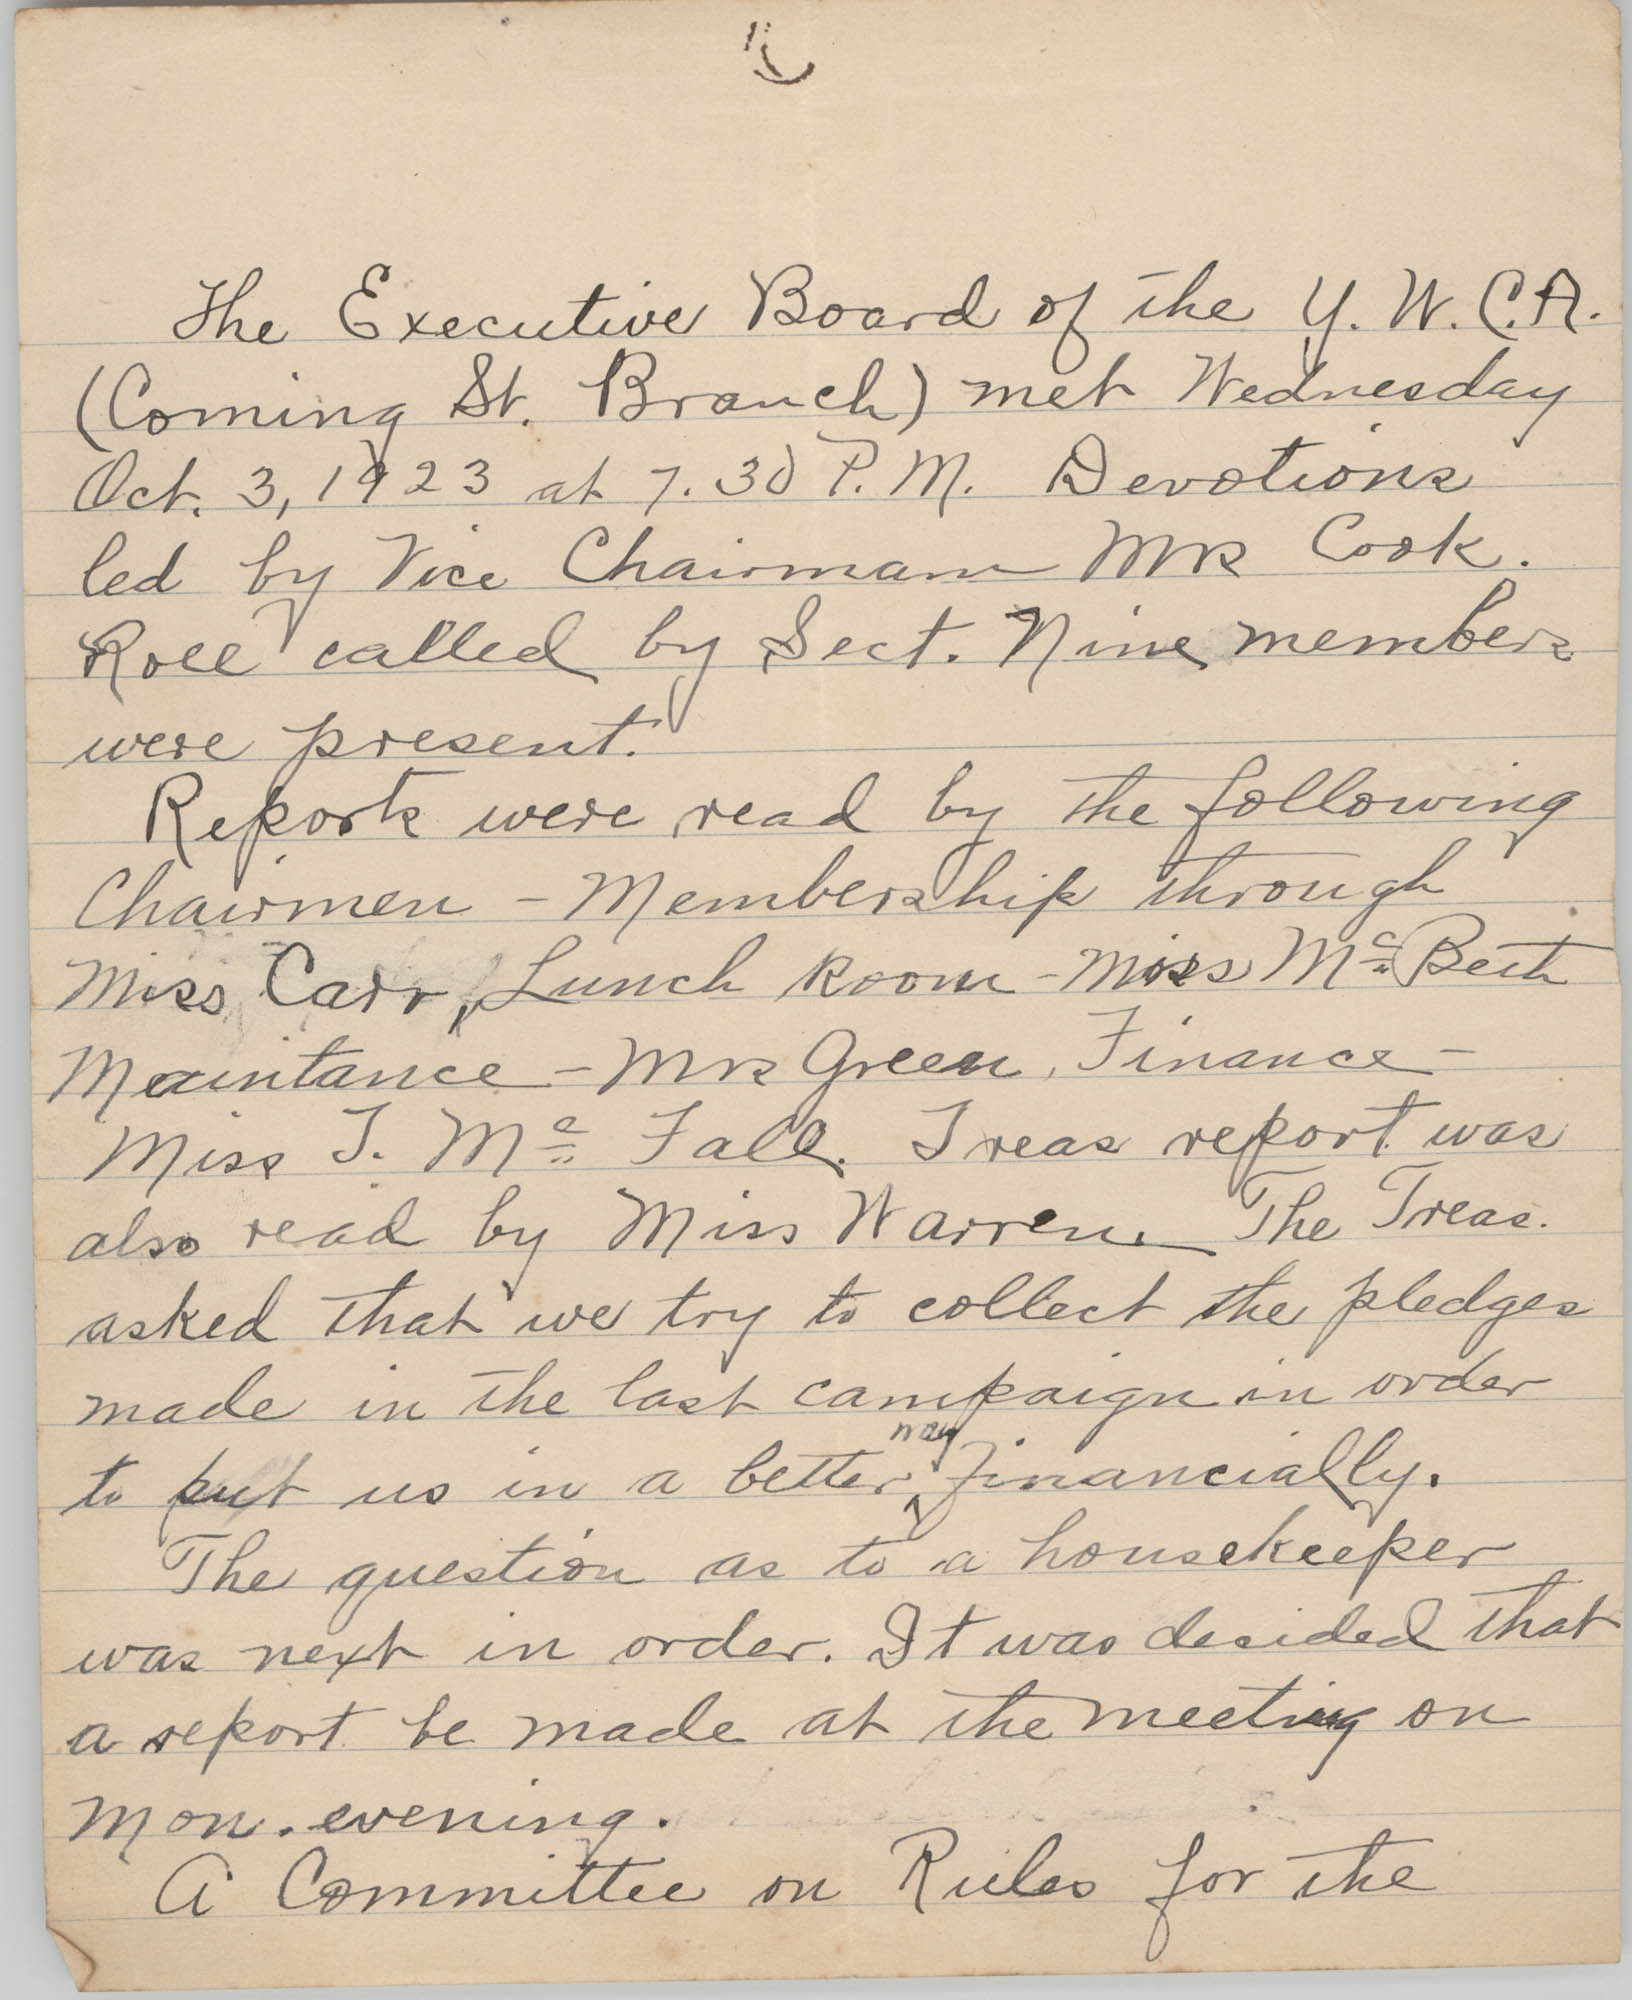 Minutes to the Executive Board of the Coming Street Y.W.C.A., October 3, 1923